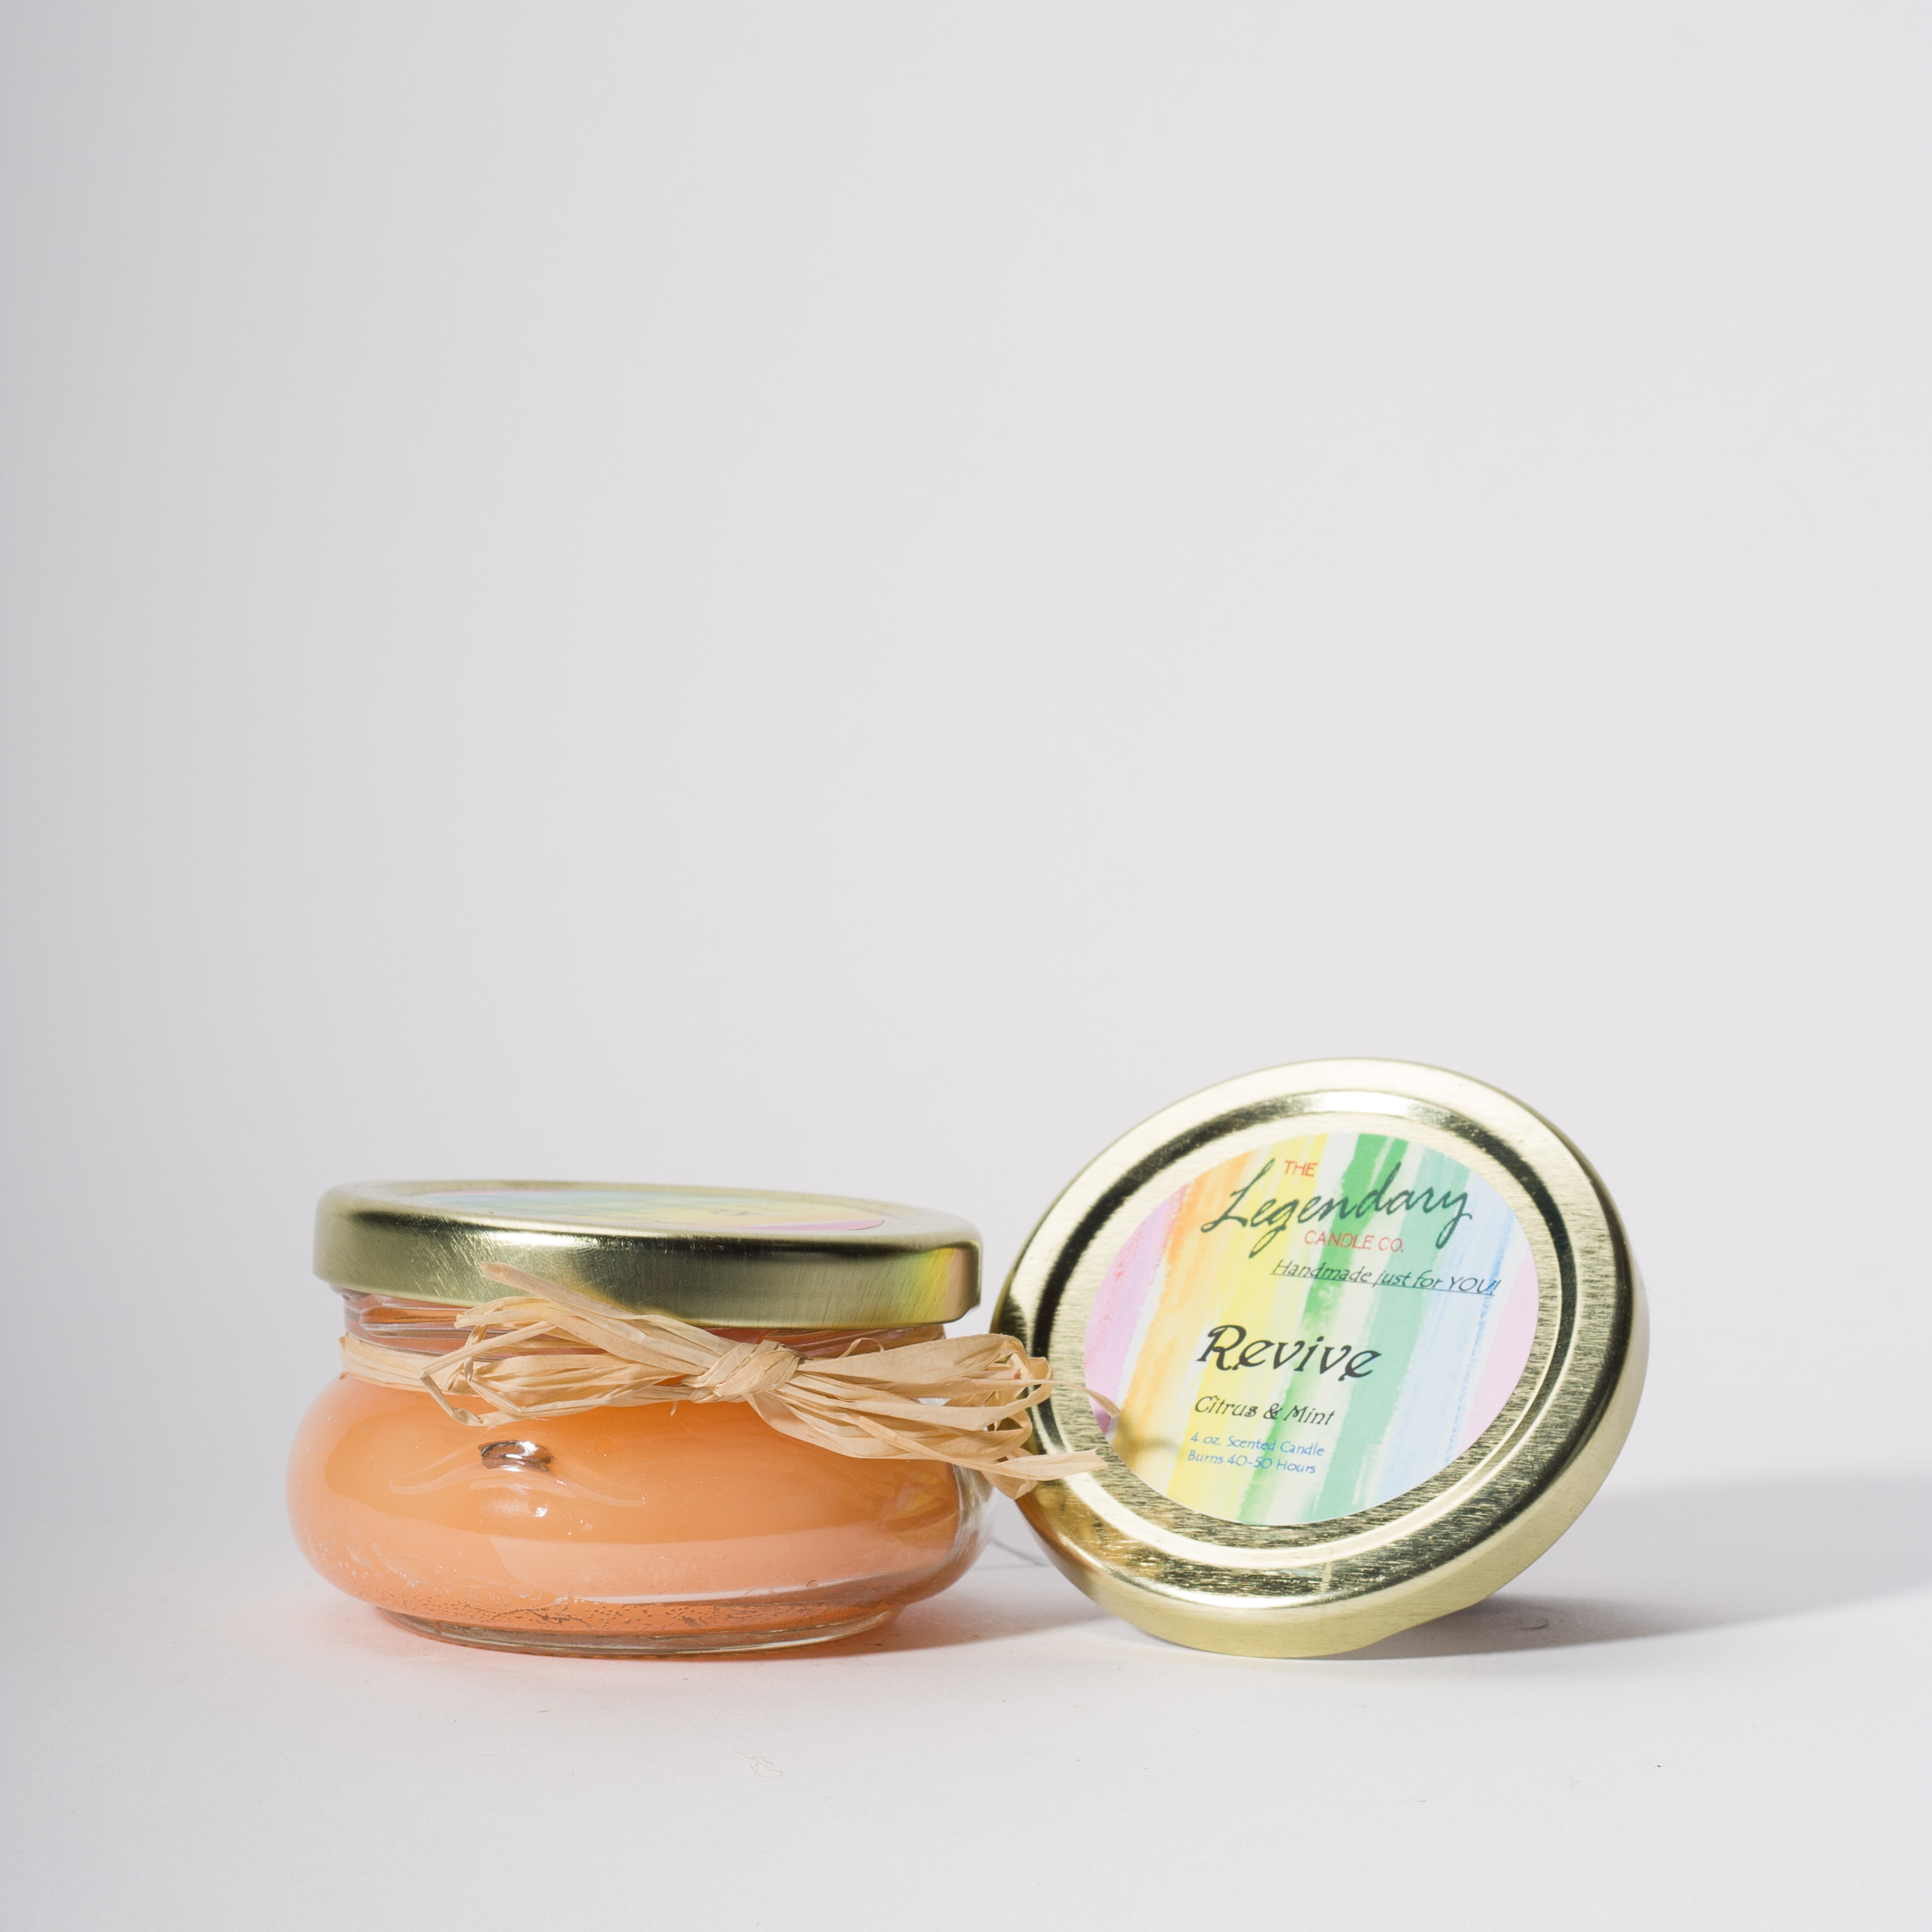 4 Ounce Revive Scented Tureen Jar Candle